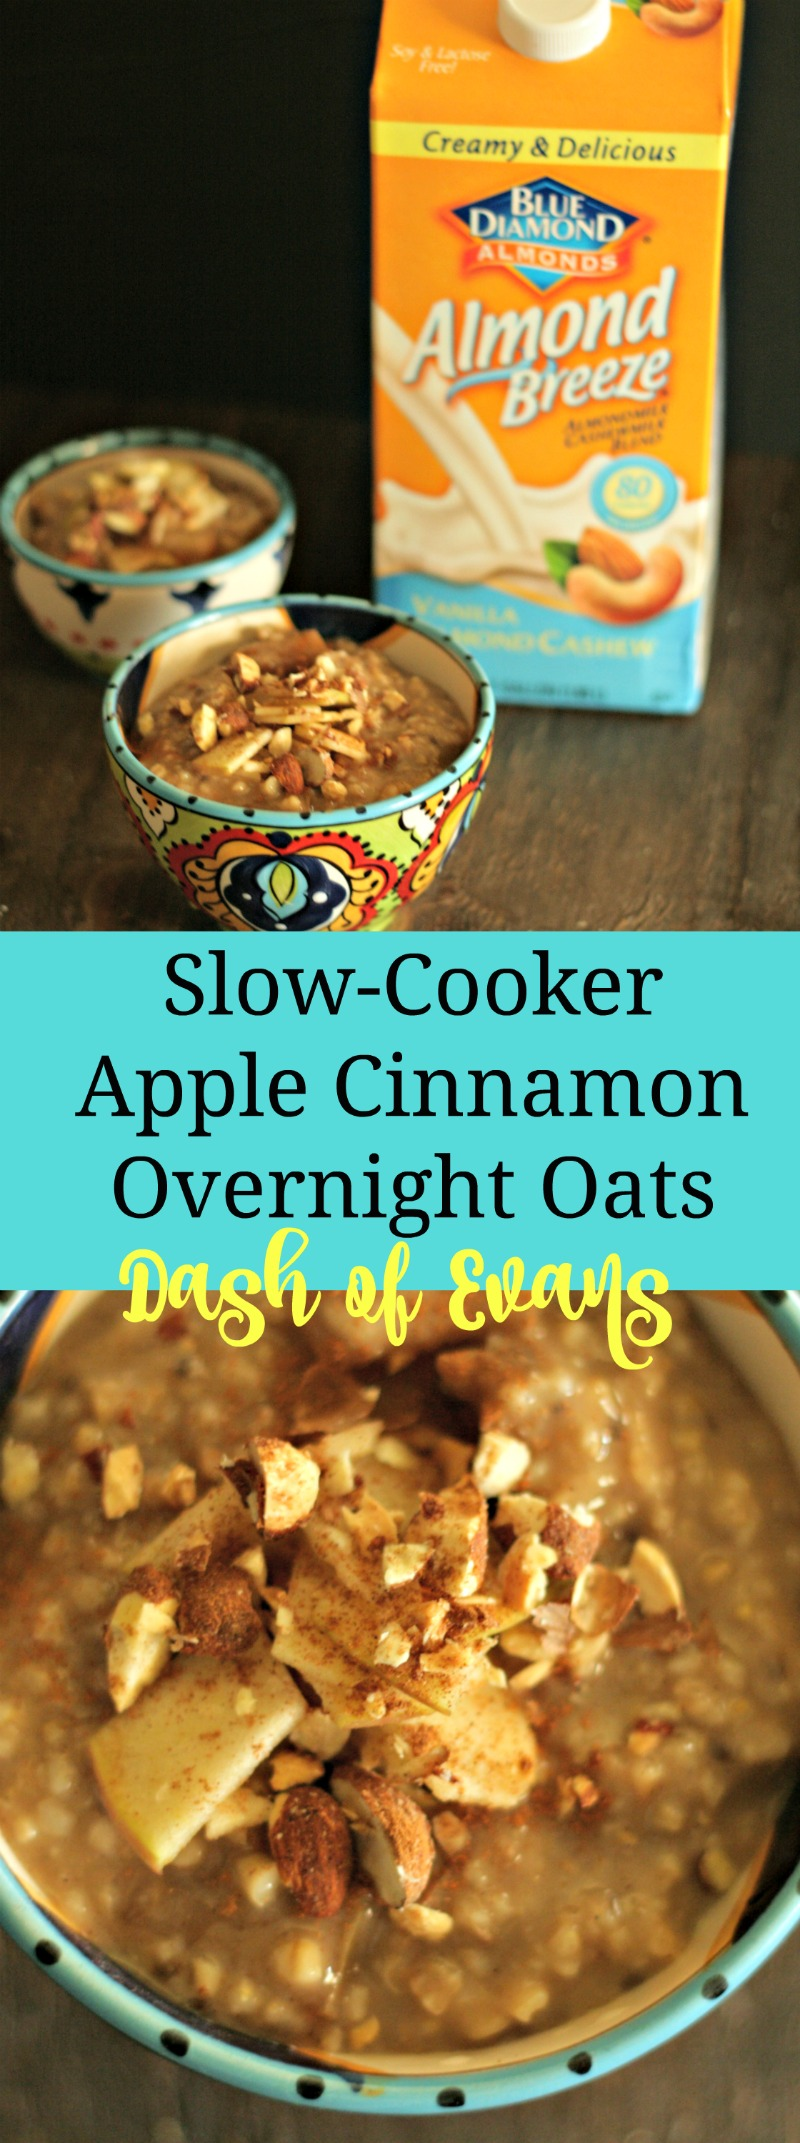 Make a batch of these slow-cooker overnight oats on a Sunday and have healthy breakfast all week! Top reheated oats with berries, nuts, honey or Greek yogurt! YUMMY!